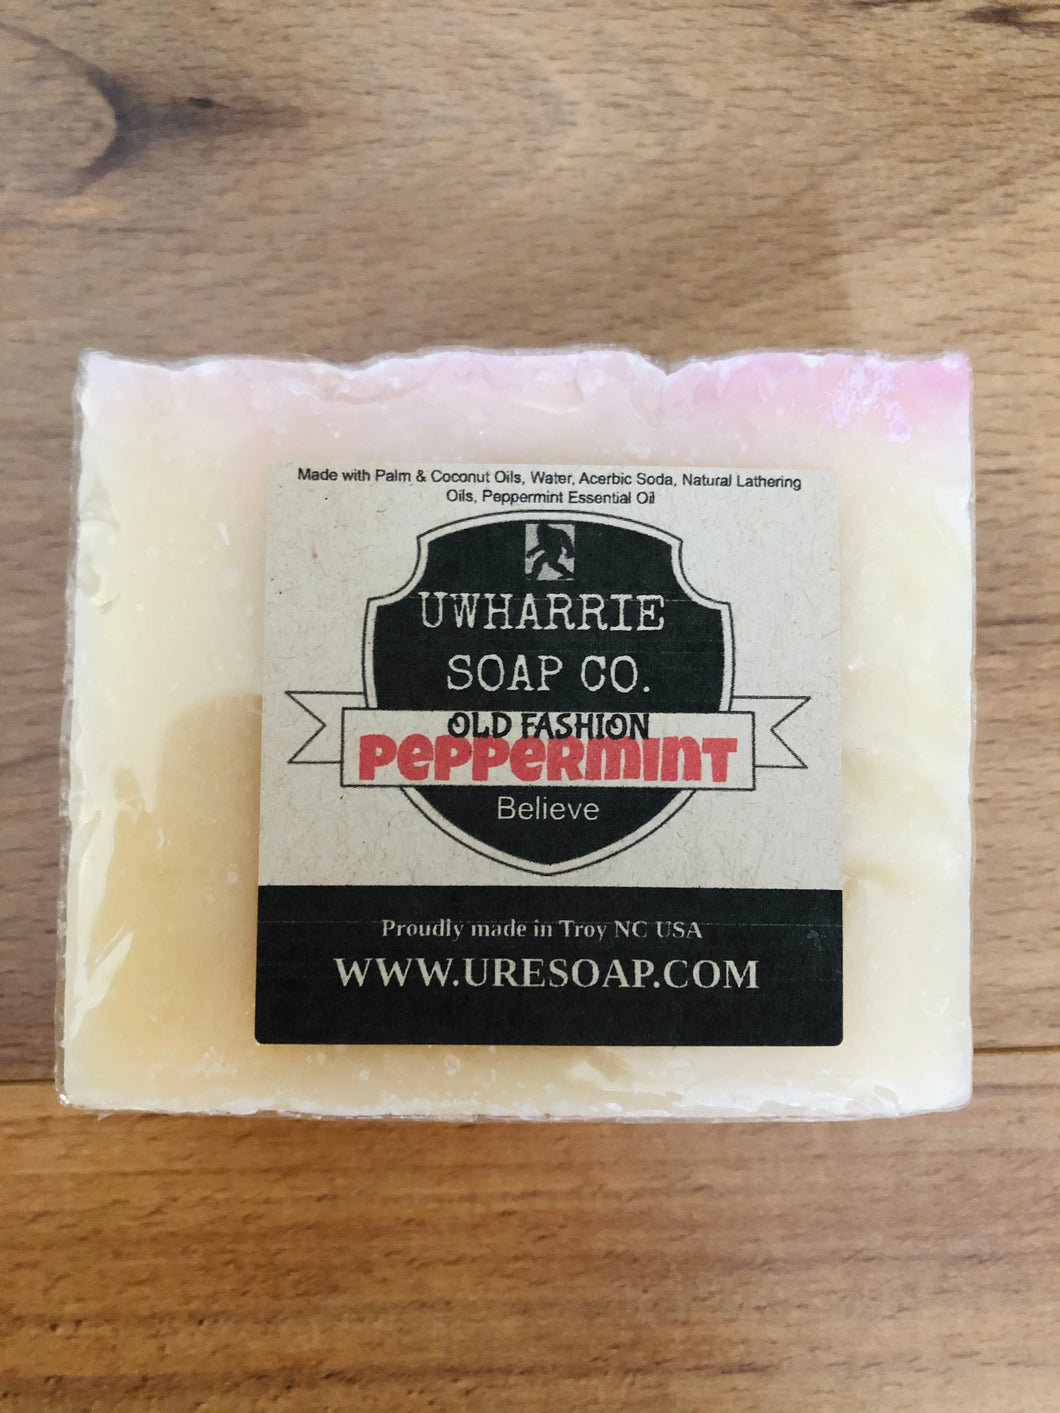 Uwharrie Soap Co. Cold Process Peppermint Soap